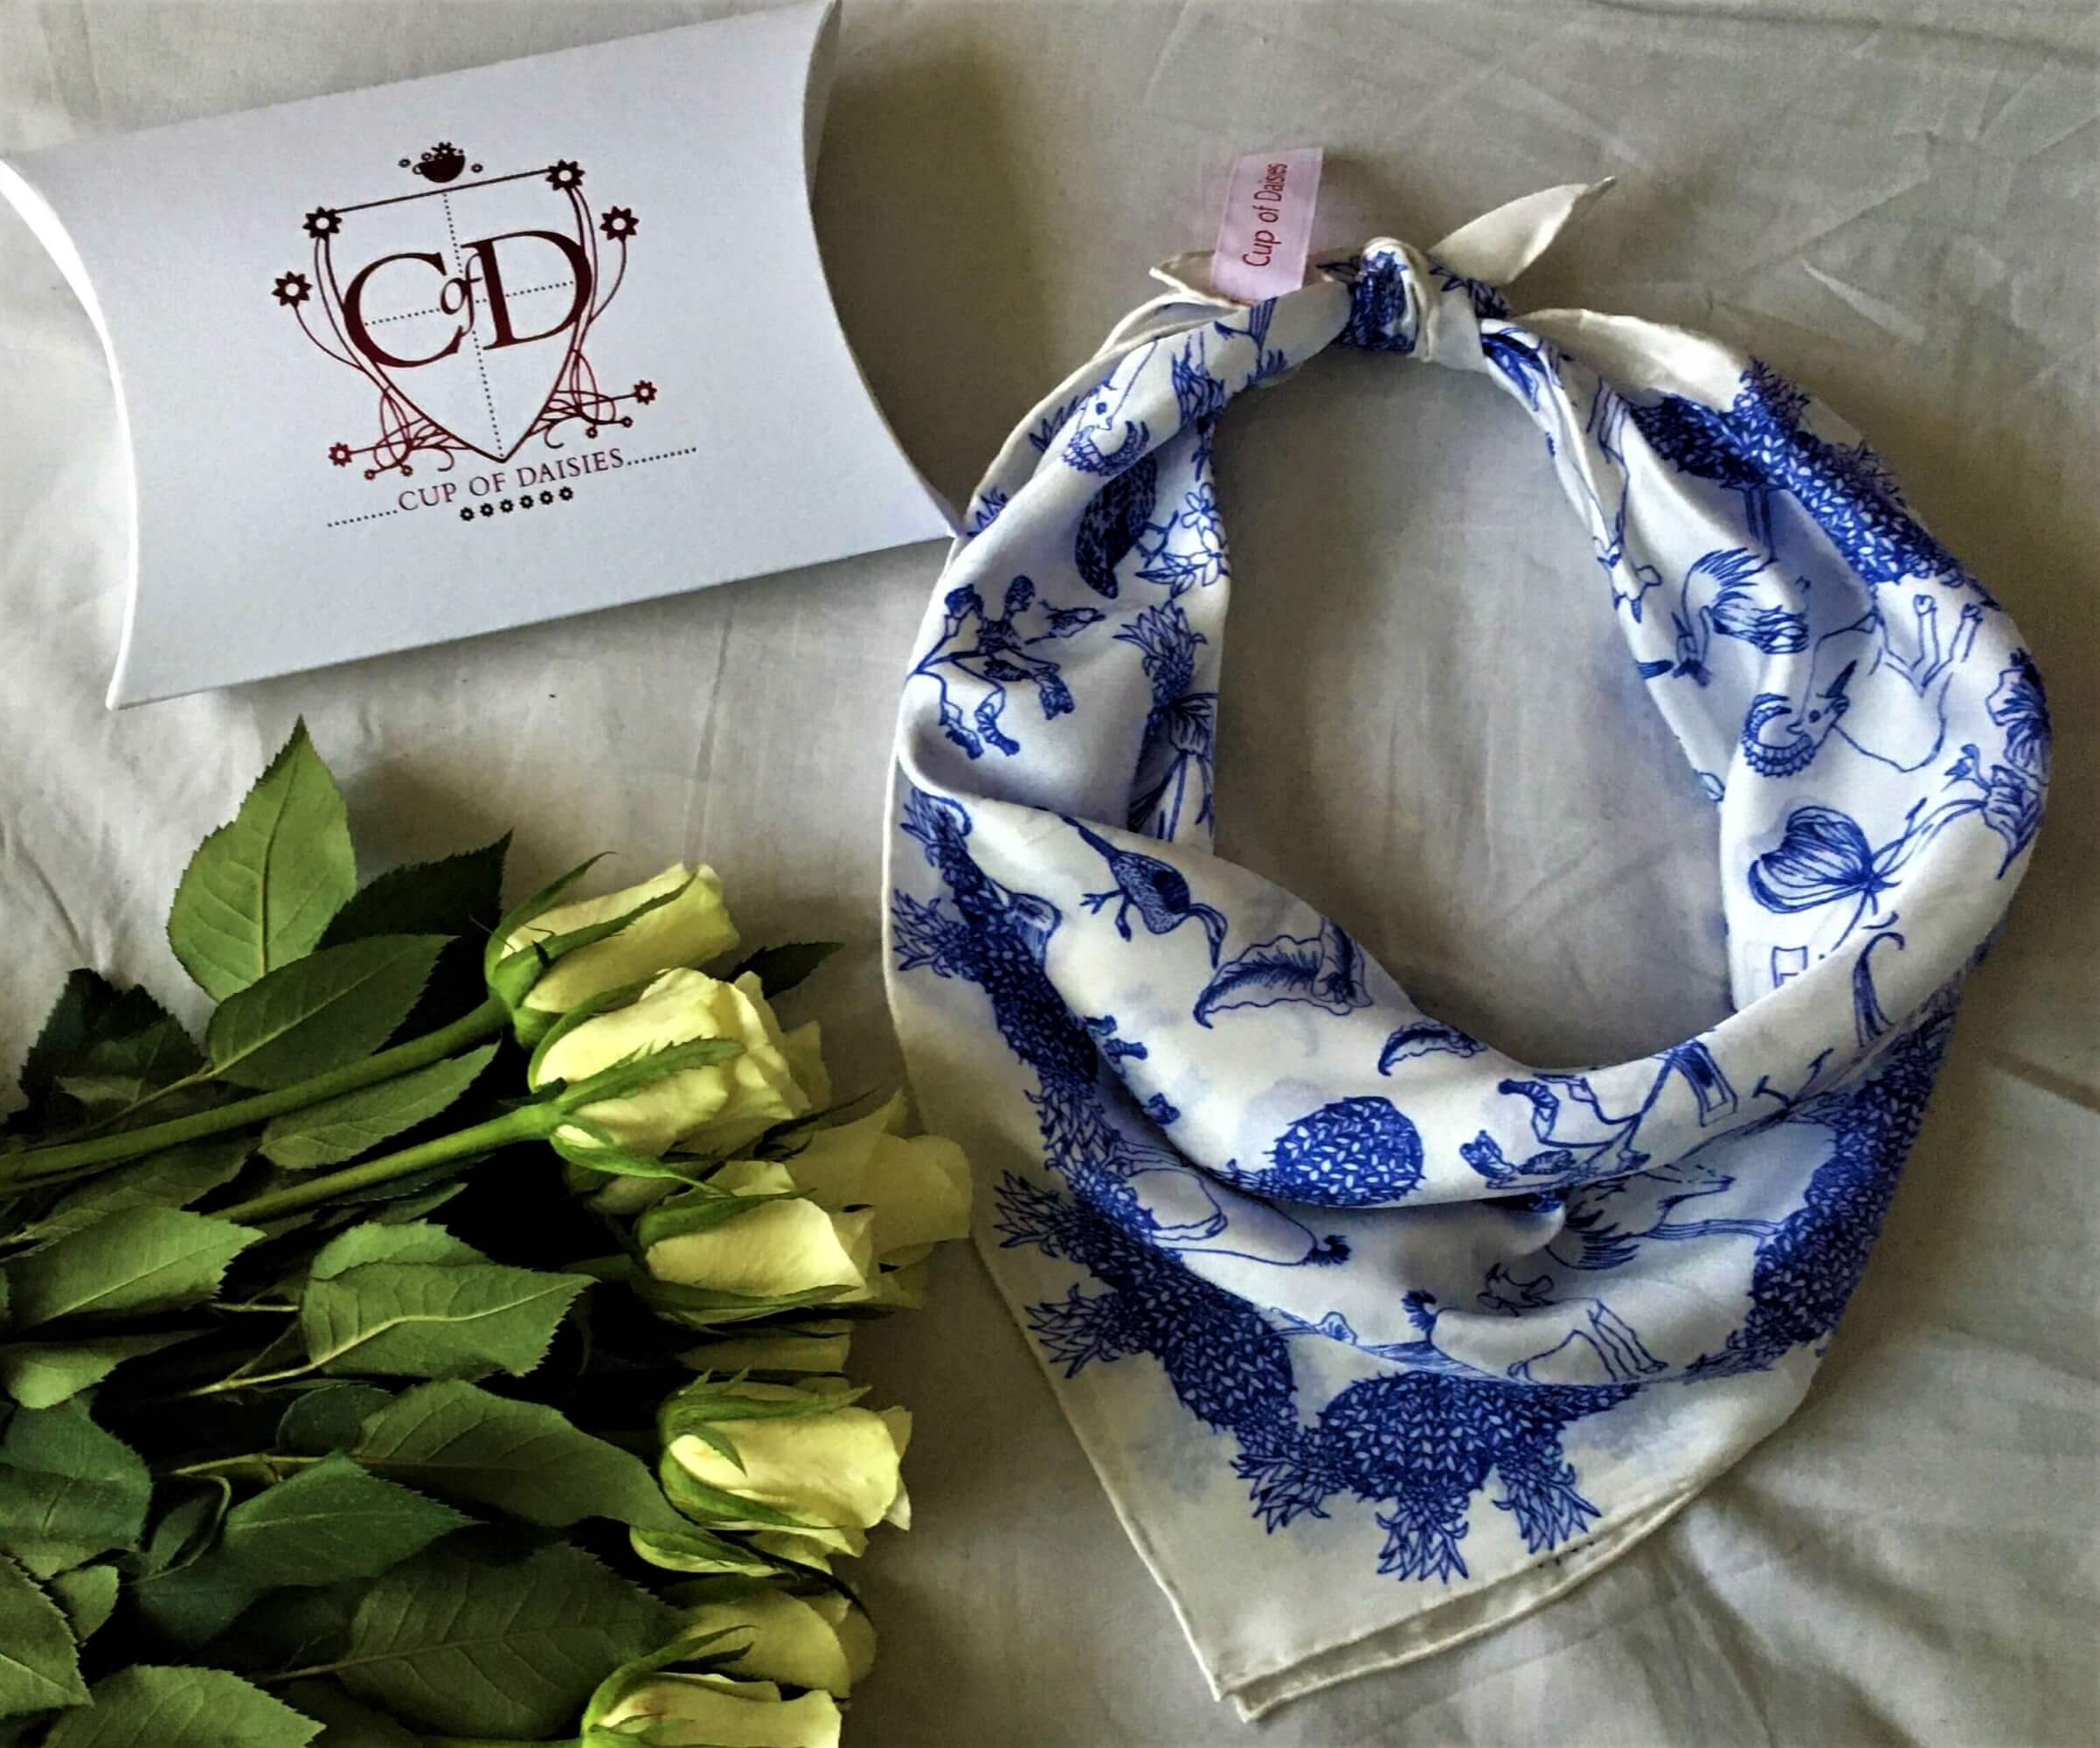 Cup of Daisies - Blue Scarf